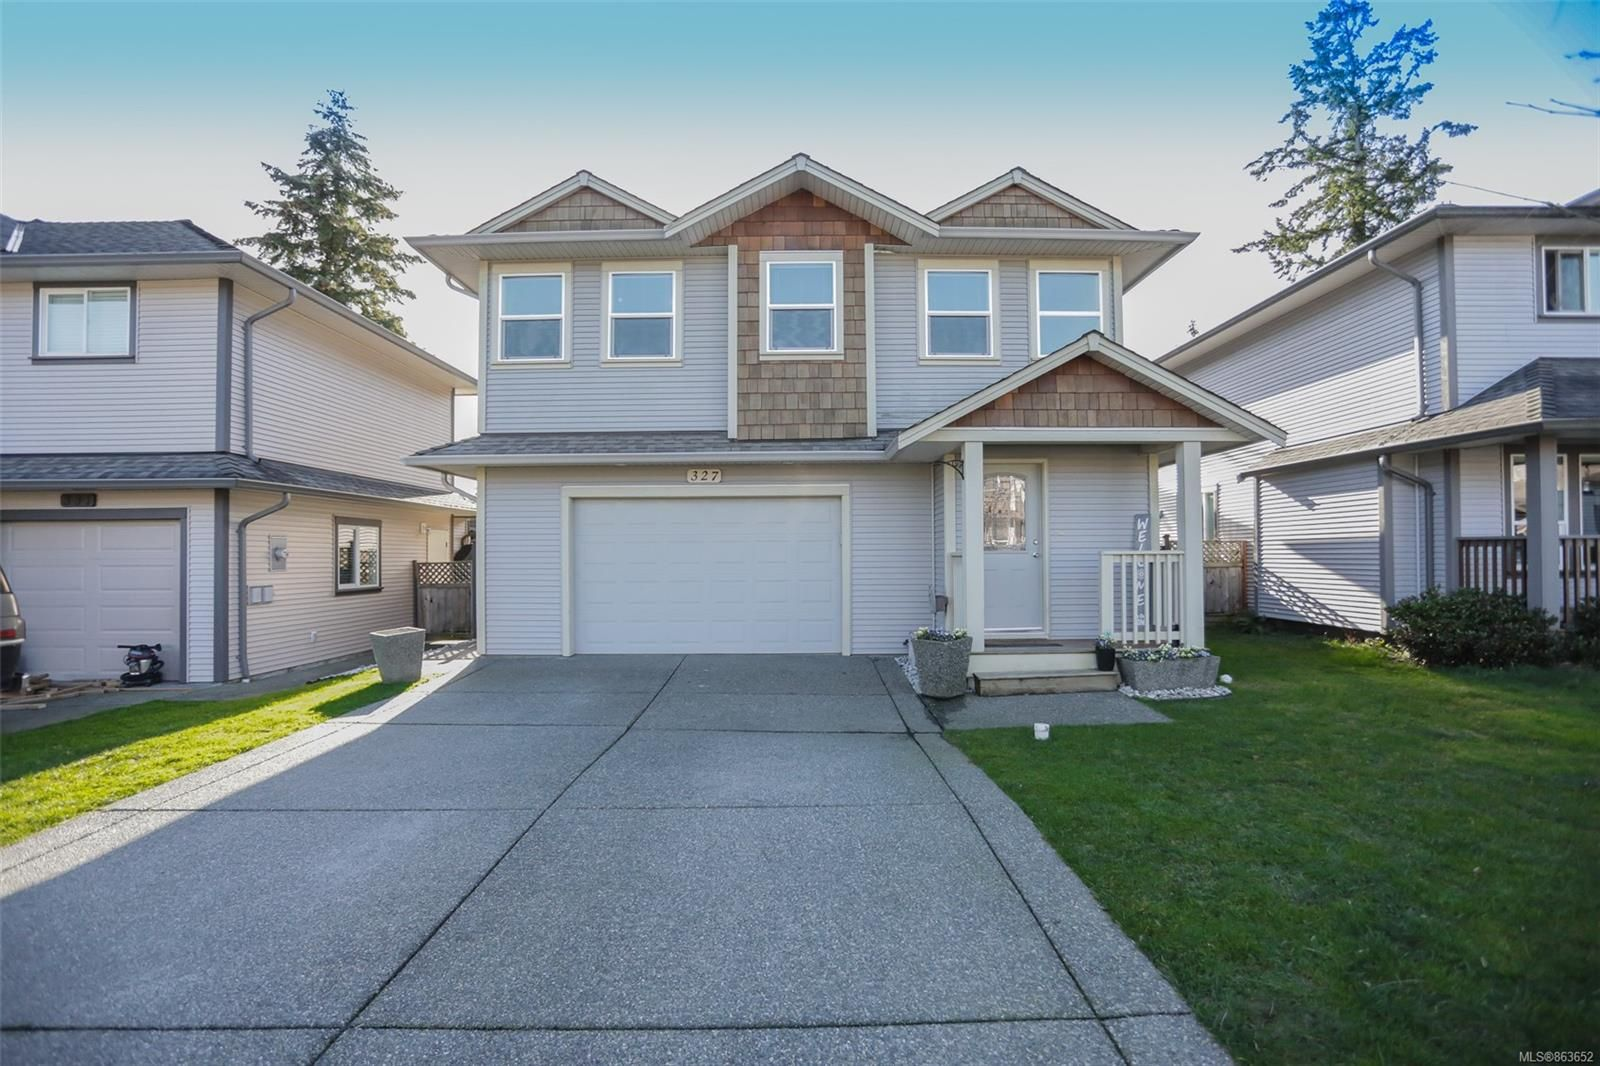 Main Photo: 327 Applewood Cres in : Na South Nanaimo House for sale (Nanaimo)  : MLS®# 863652